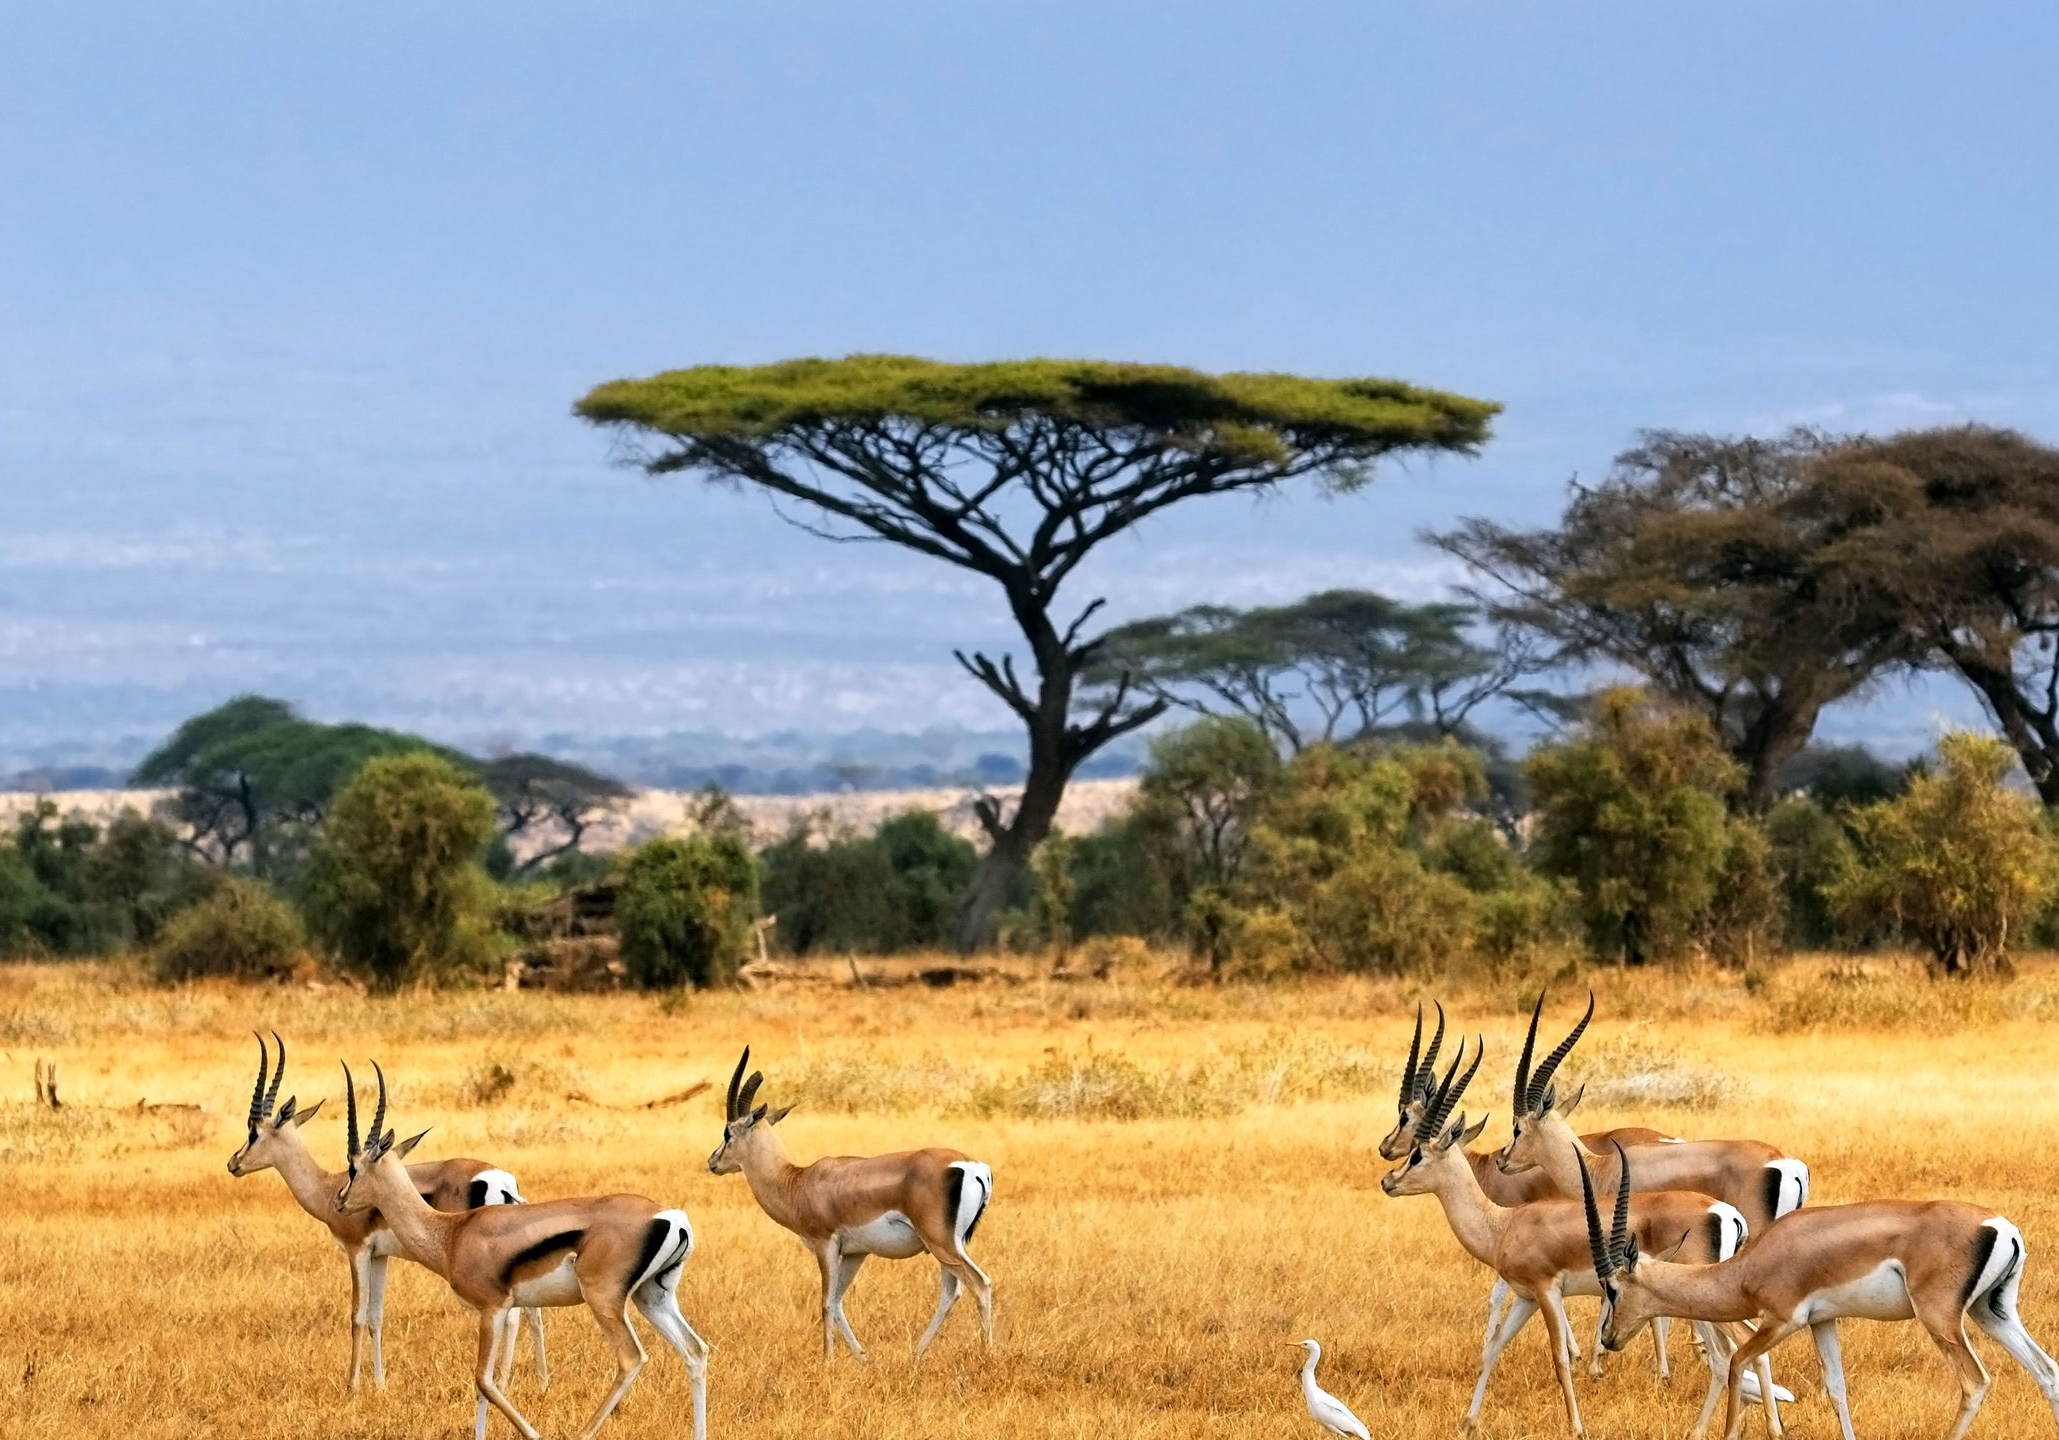 Pictures-of-the-African-Savannah-1-1-1